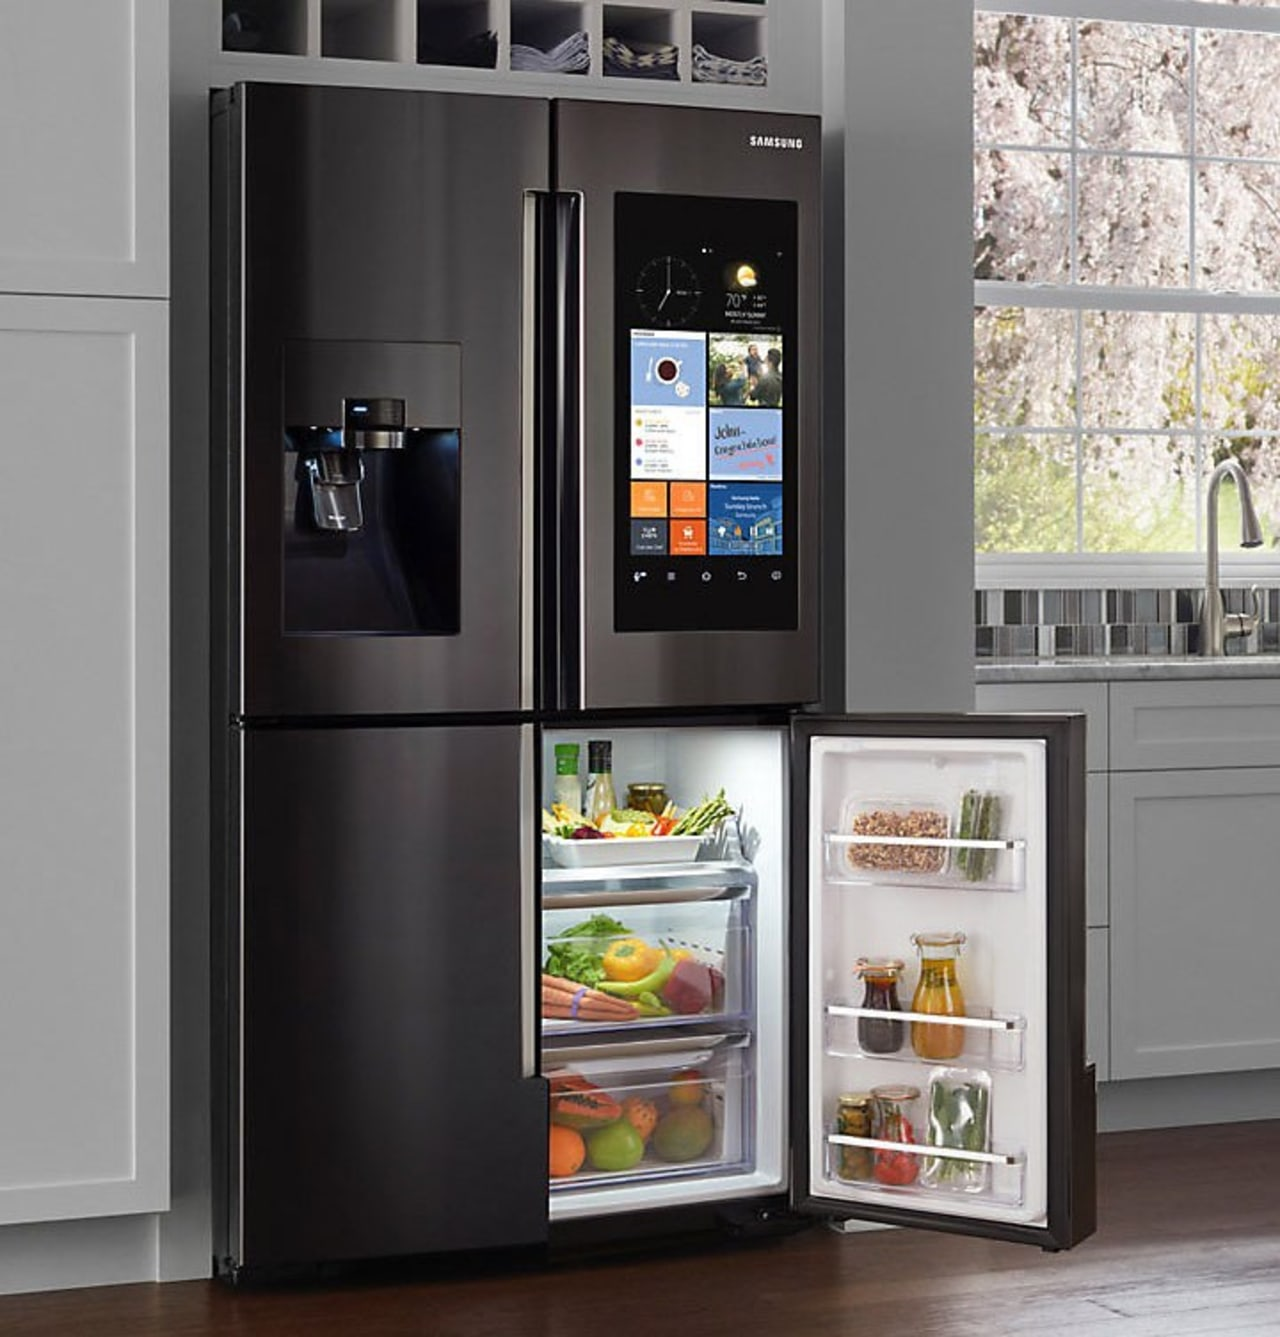 Smart Hub: A refrigerator with a Wi-Fi enabled home appliance, kitchen appliance, major appliance, product, refrigerator, shelving, black, gray